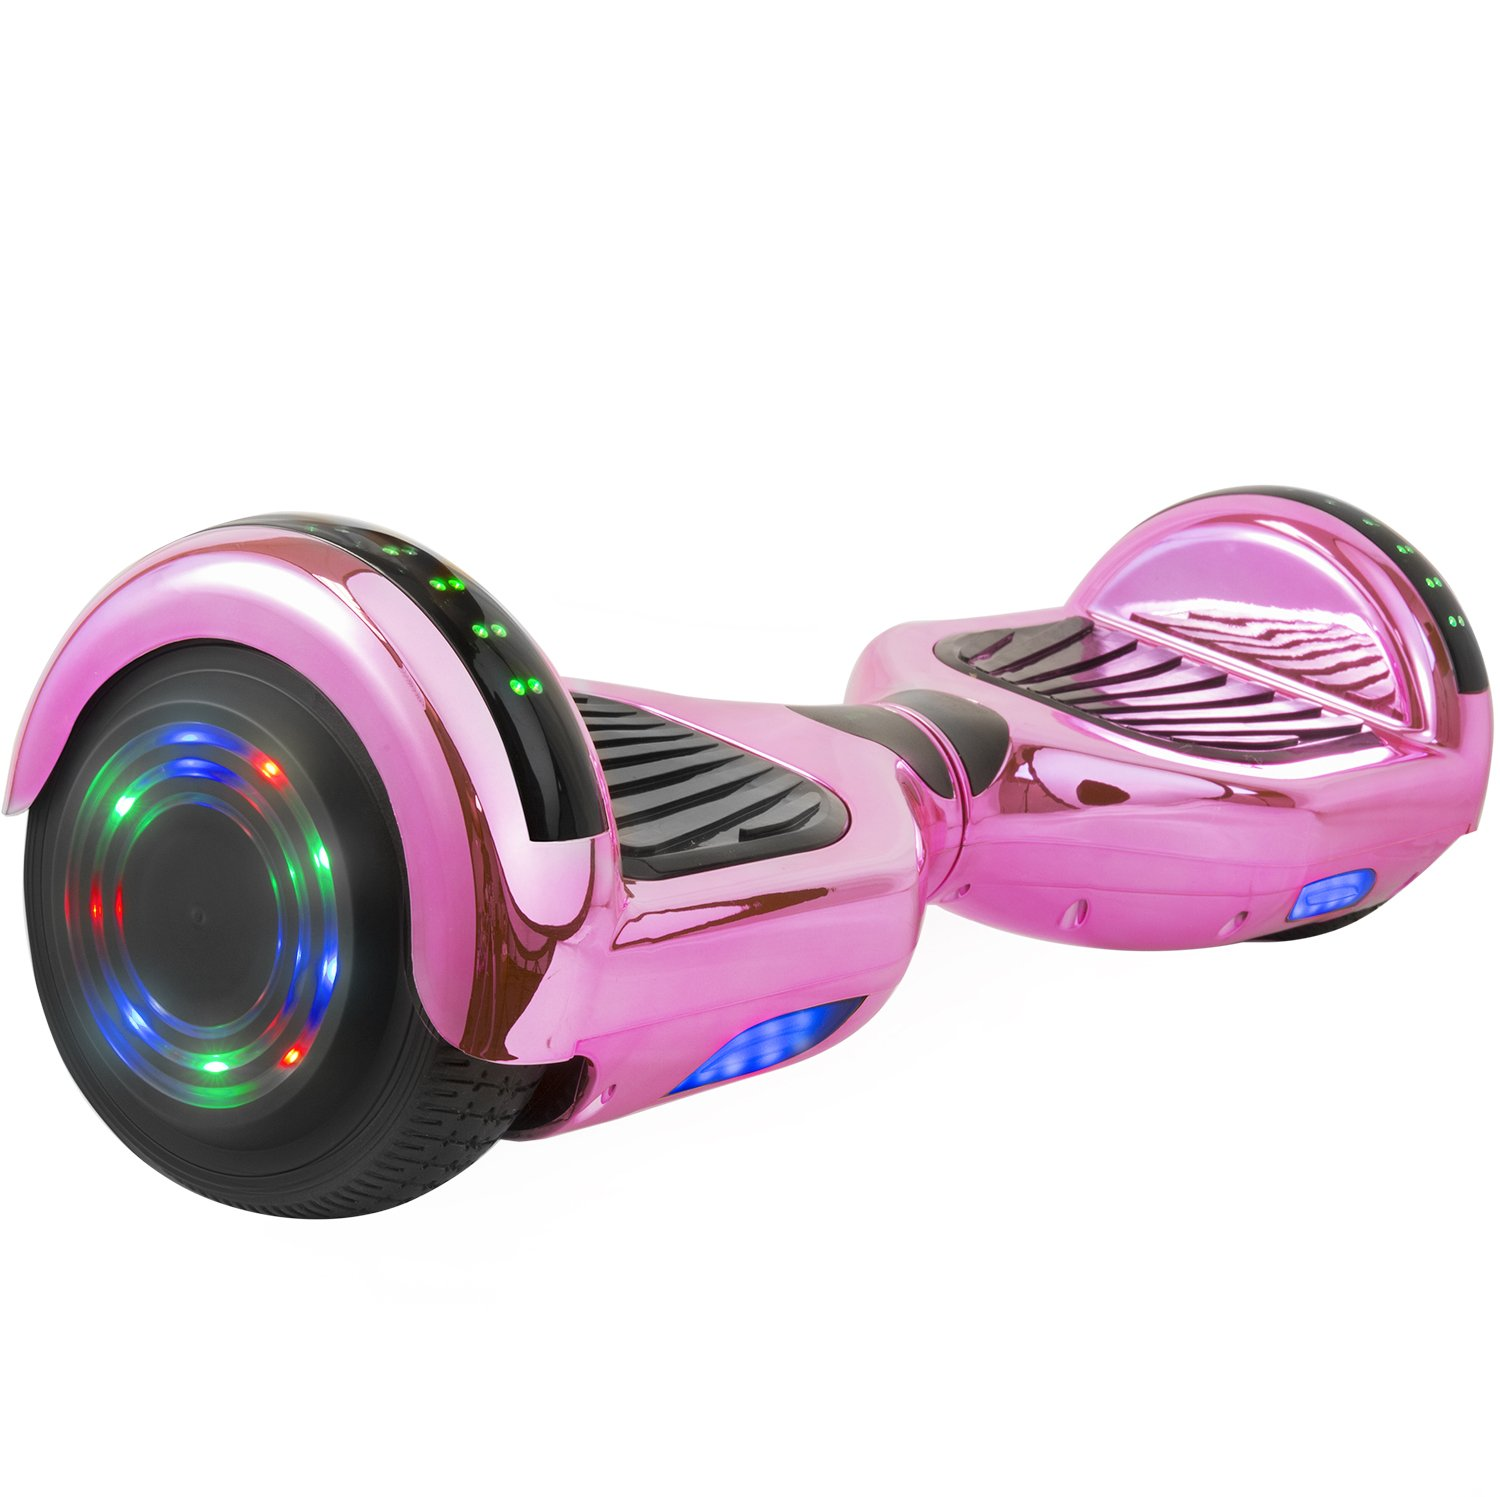 OTTO Hoverboard UL Certified C1 Plus Smart Electric Self Balancing Scooter with LED Lights Flash Light Wheels and Bluetooth Speaker Dual 250W Motors 220LB Max Loaded(6.5'',Pink)